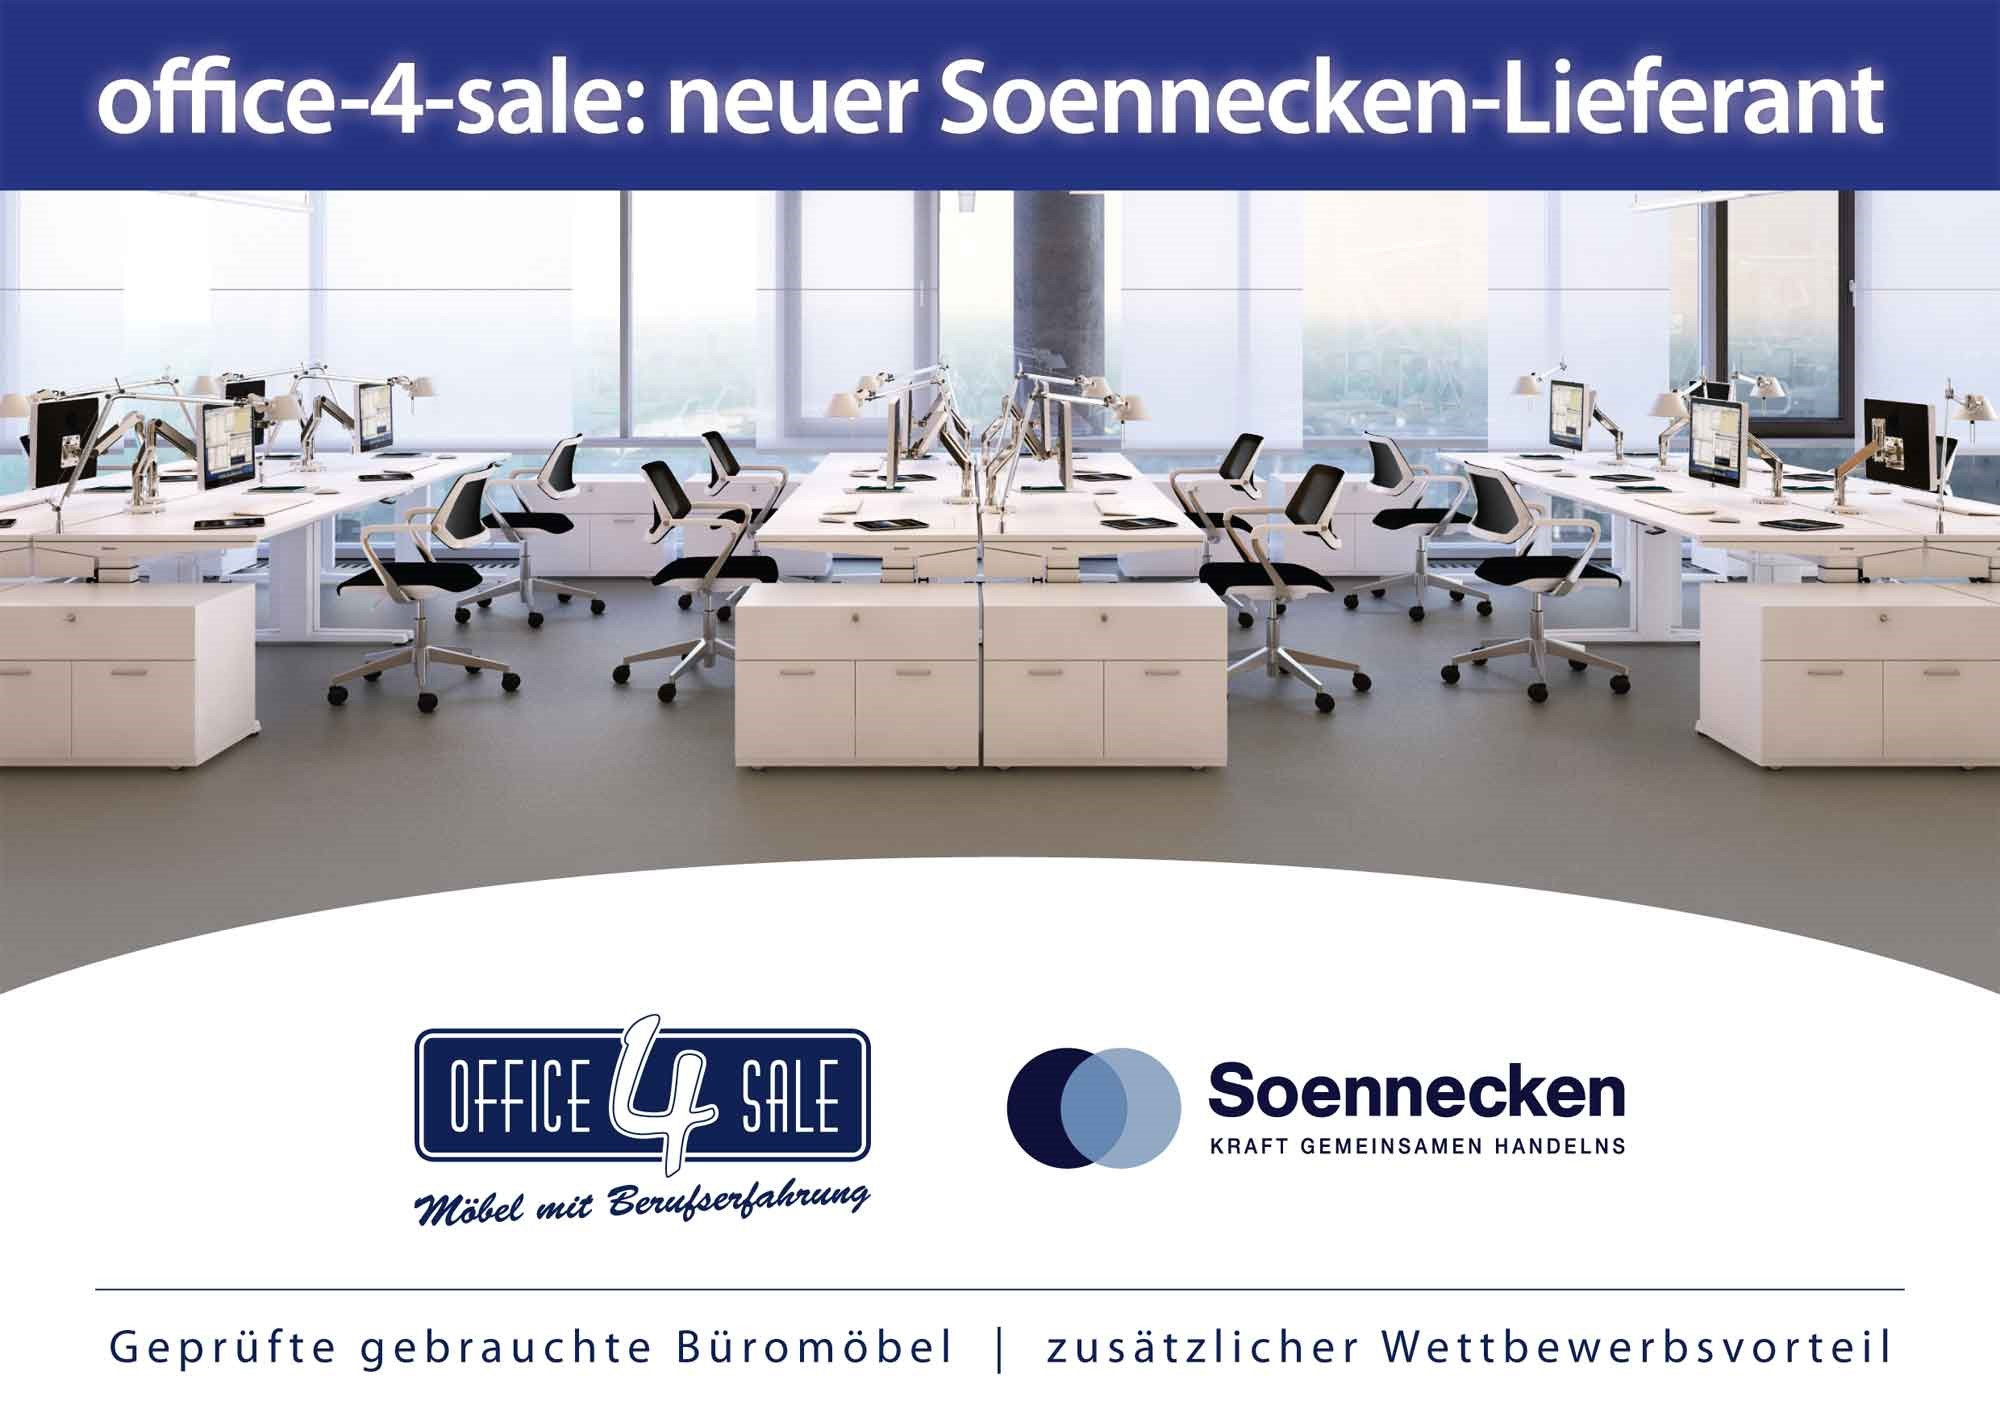 office-4-sale ist neuer Soennecken-Partner